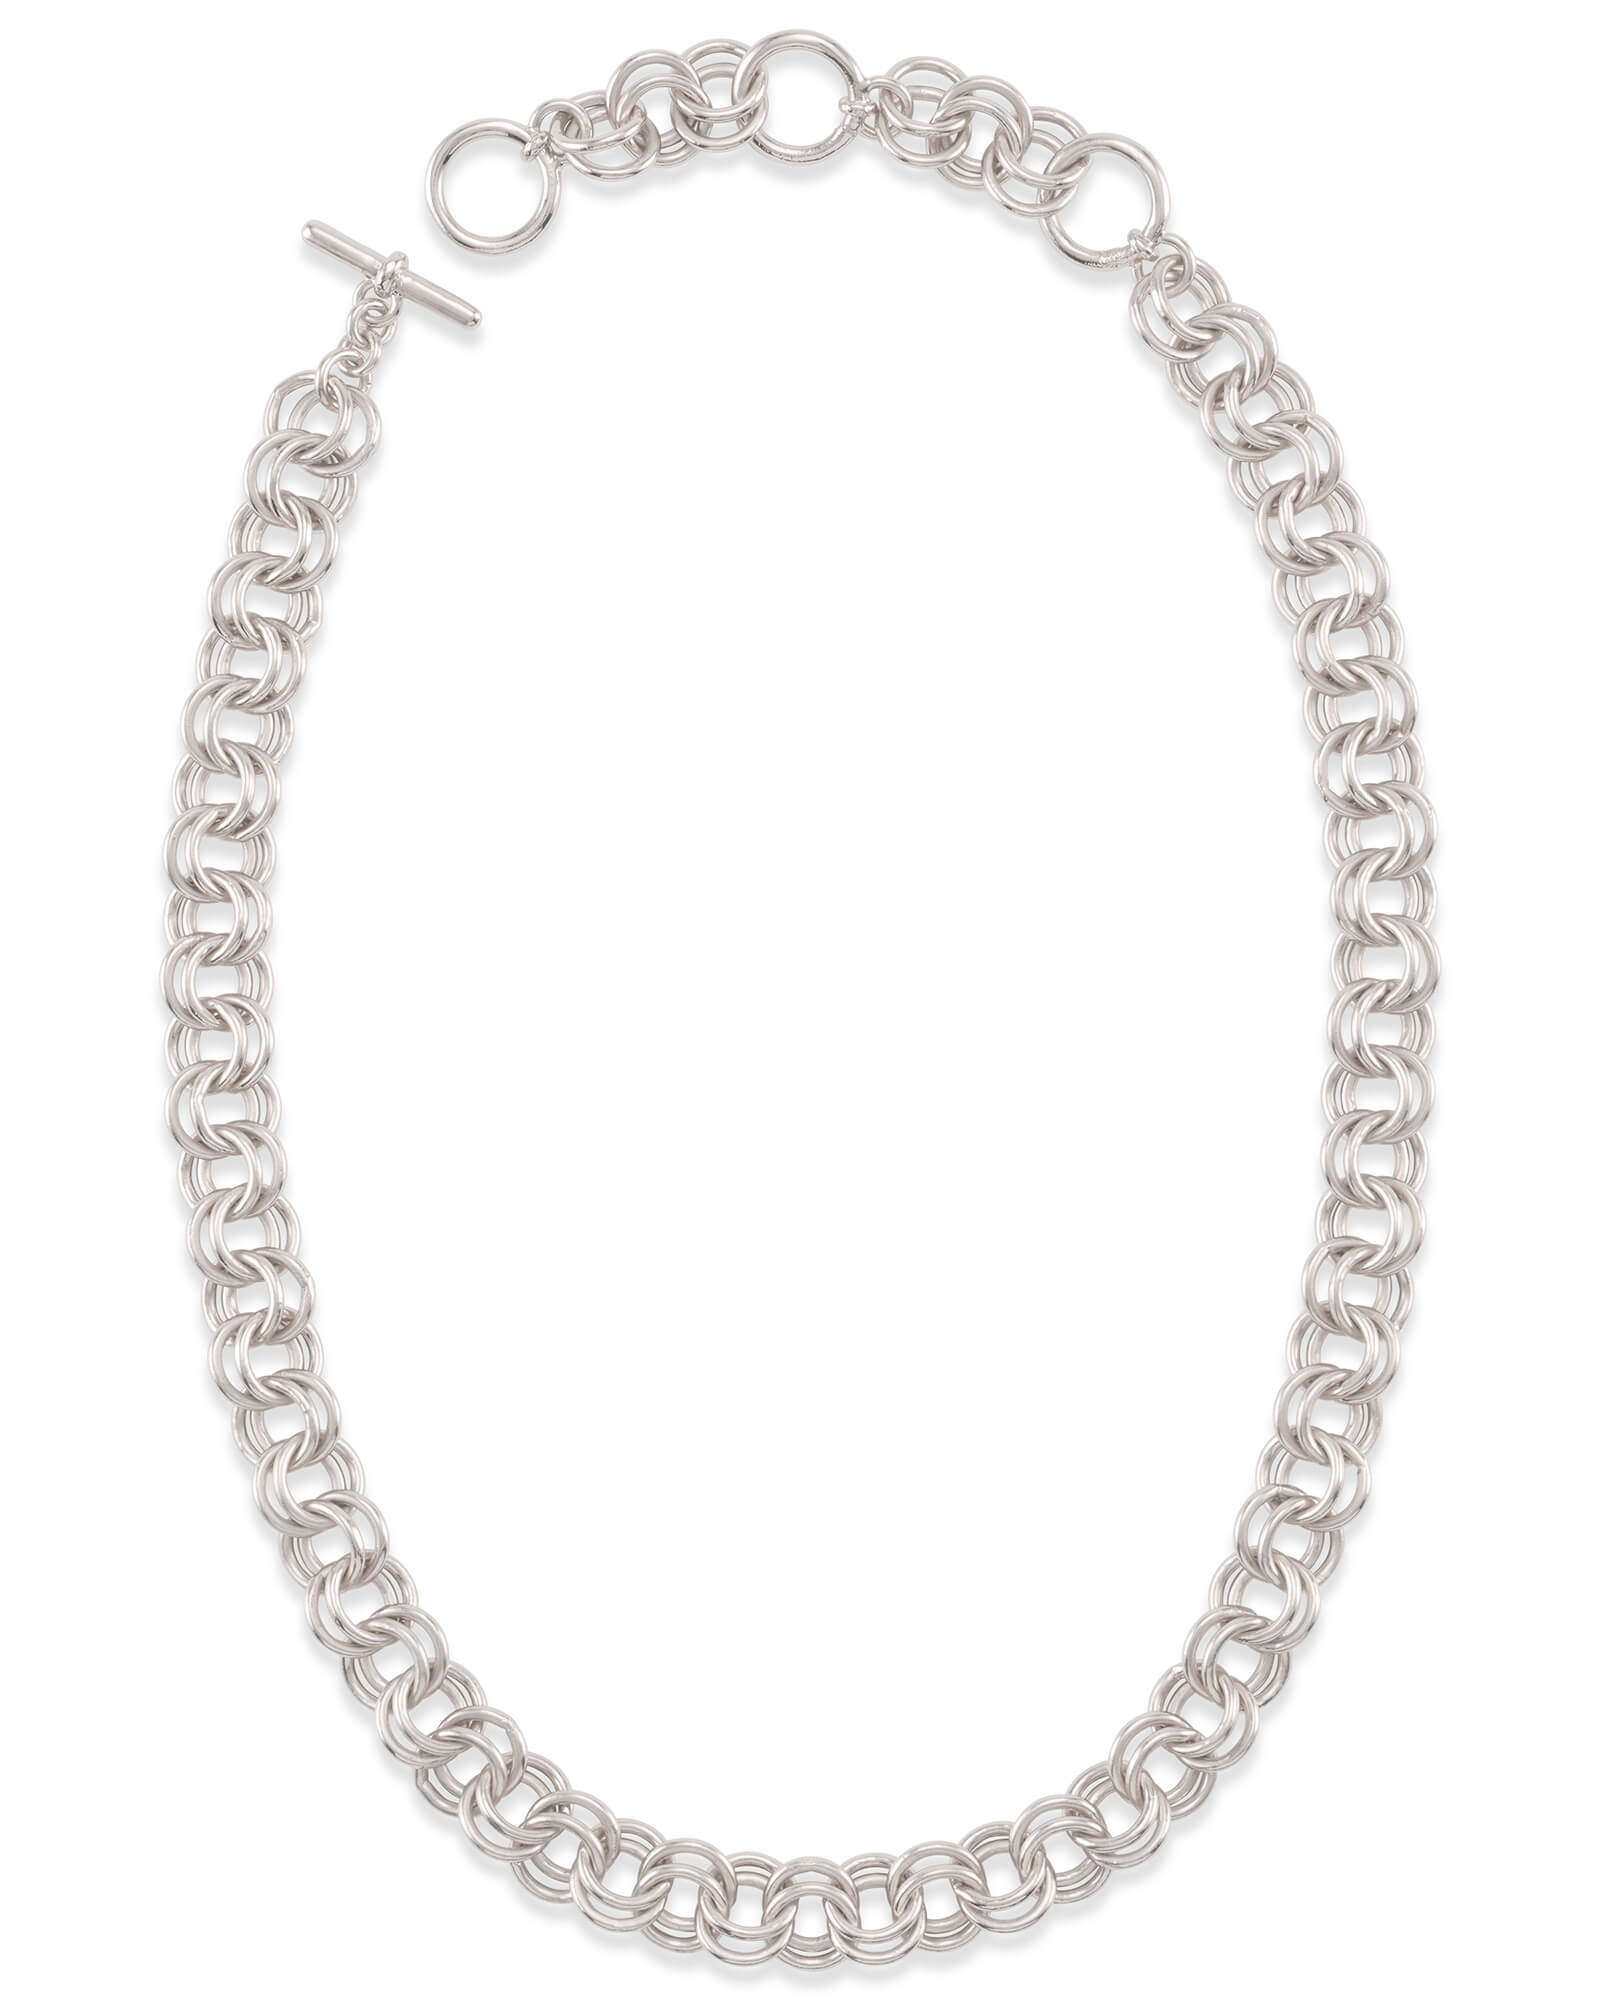 18 Inch Double Chain Link Necklace in Silver